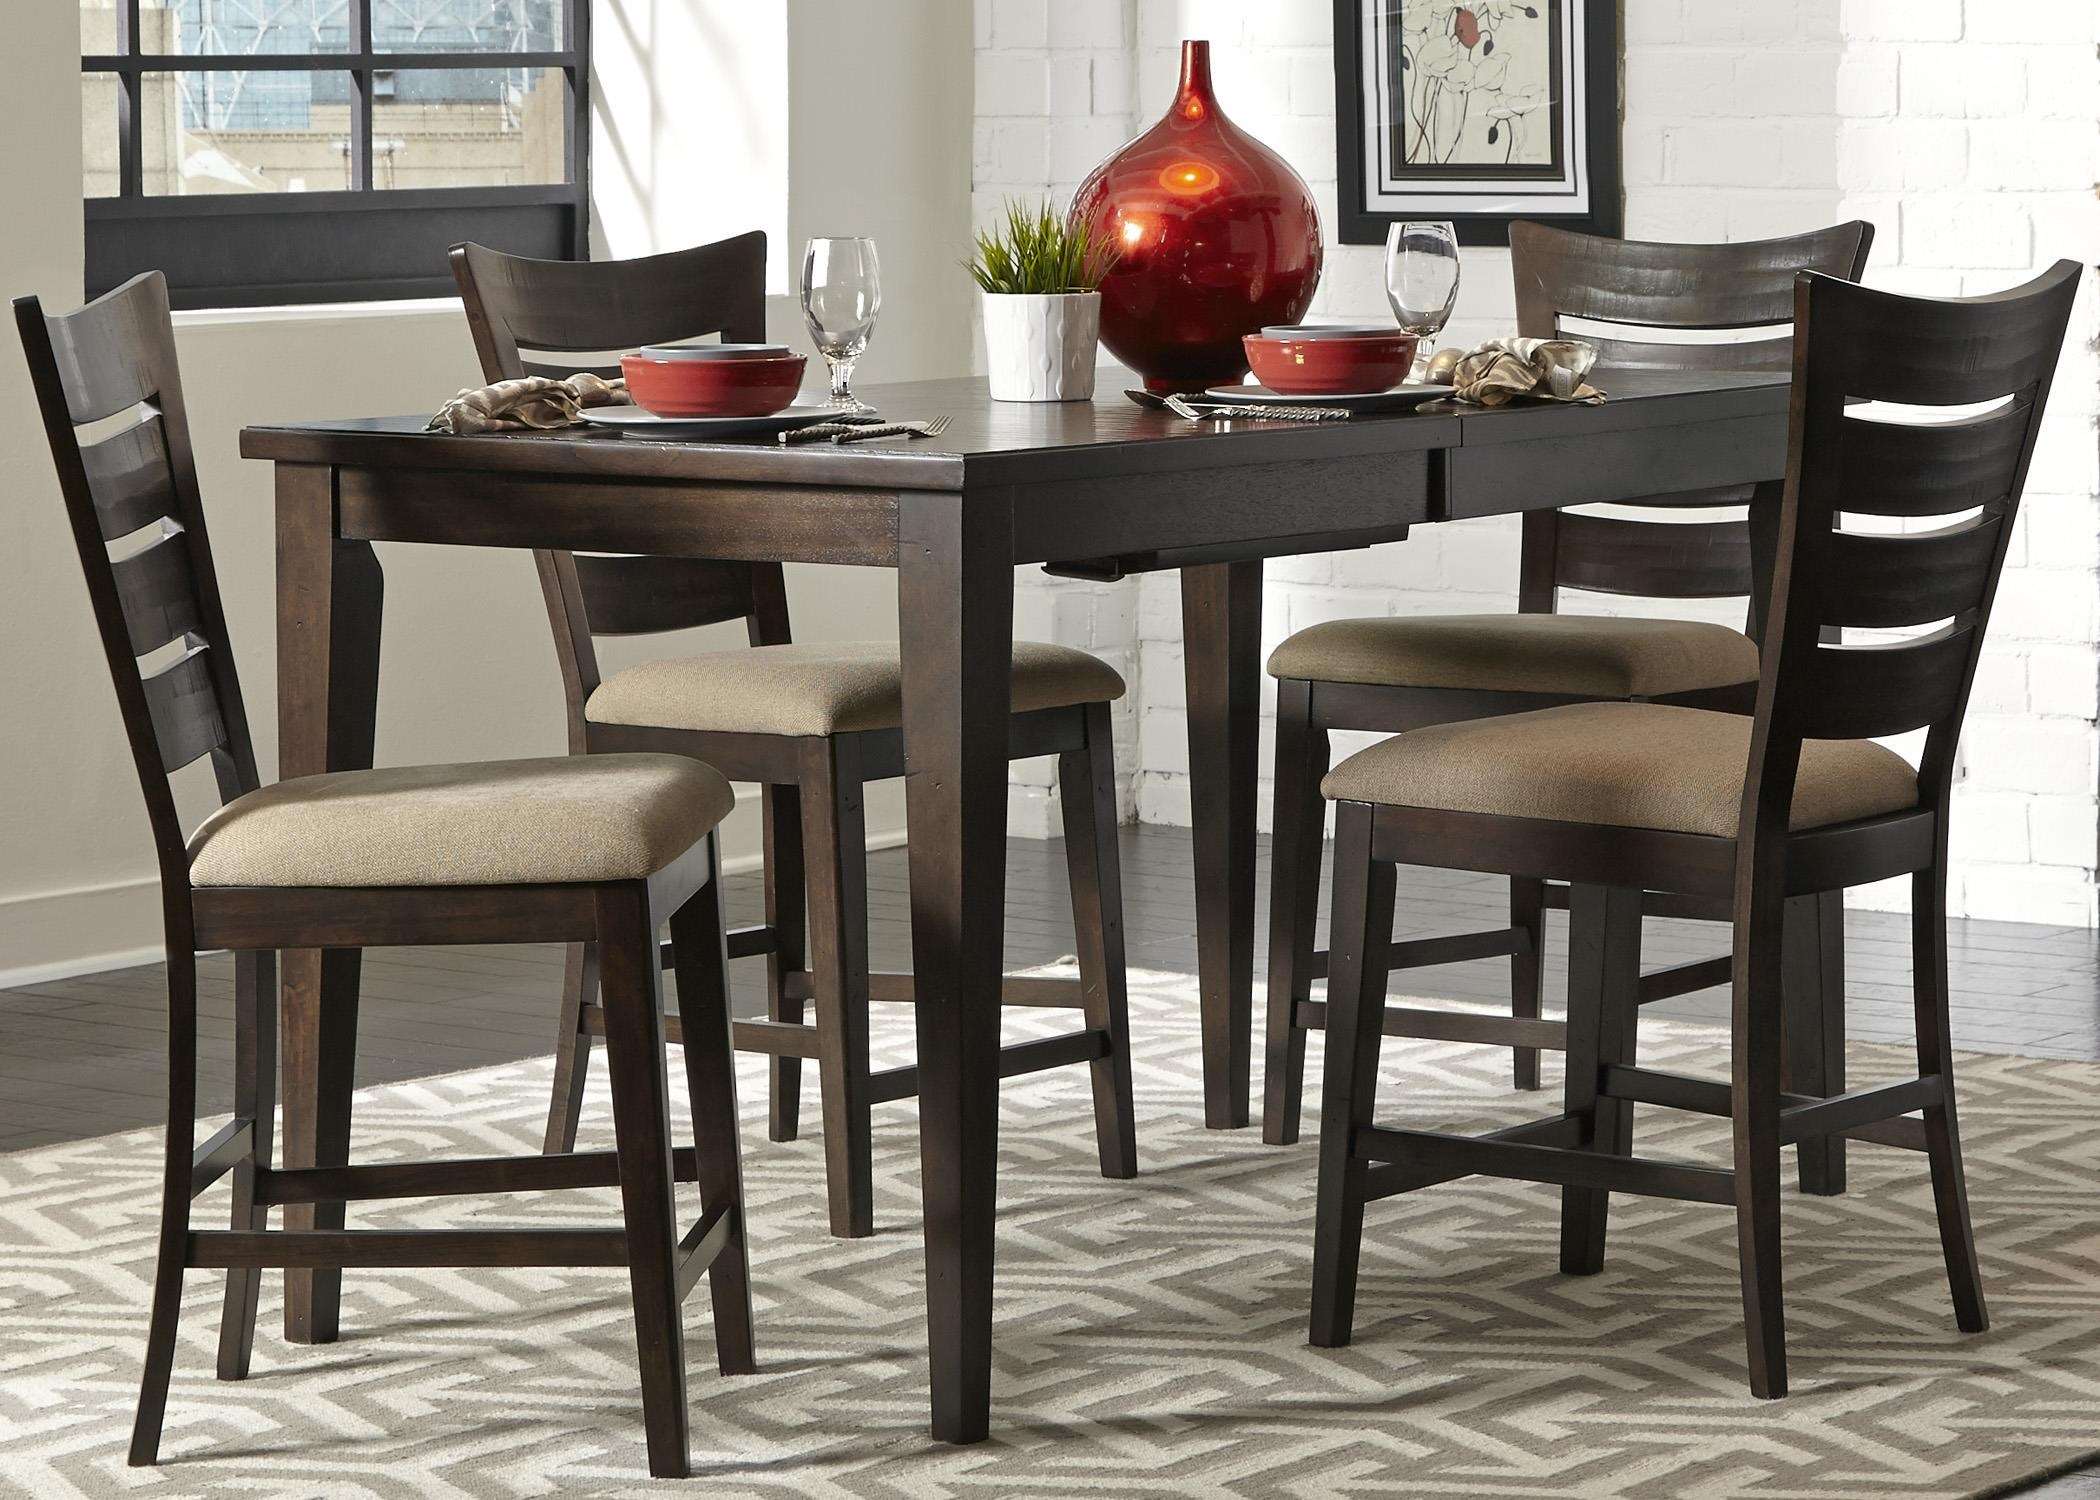 Liberty Furniture Pebble Creek 5 Piece Gathering Table Set